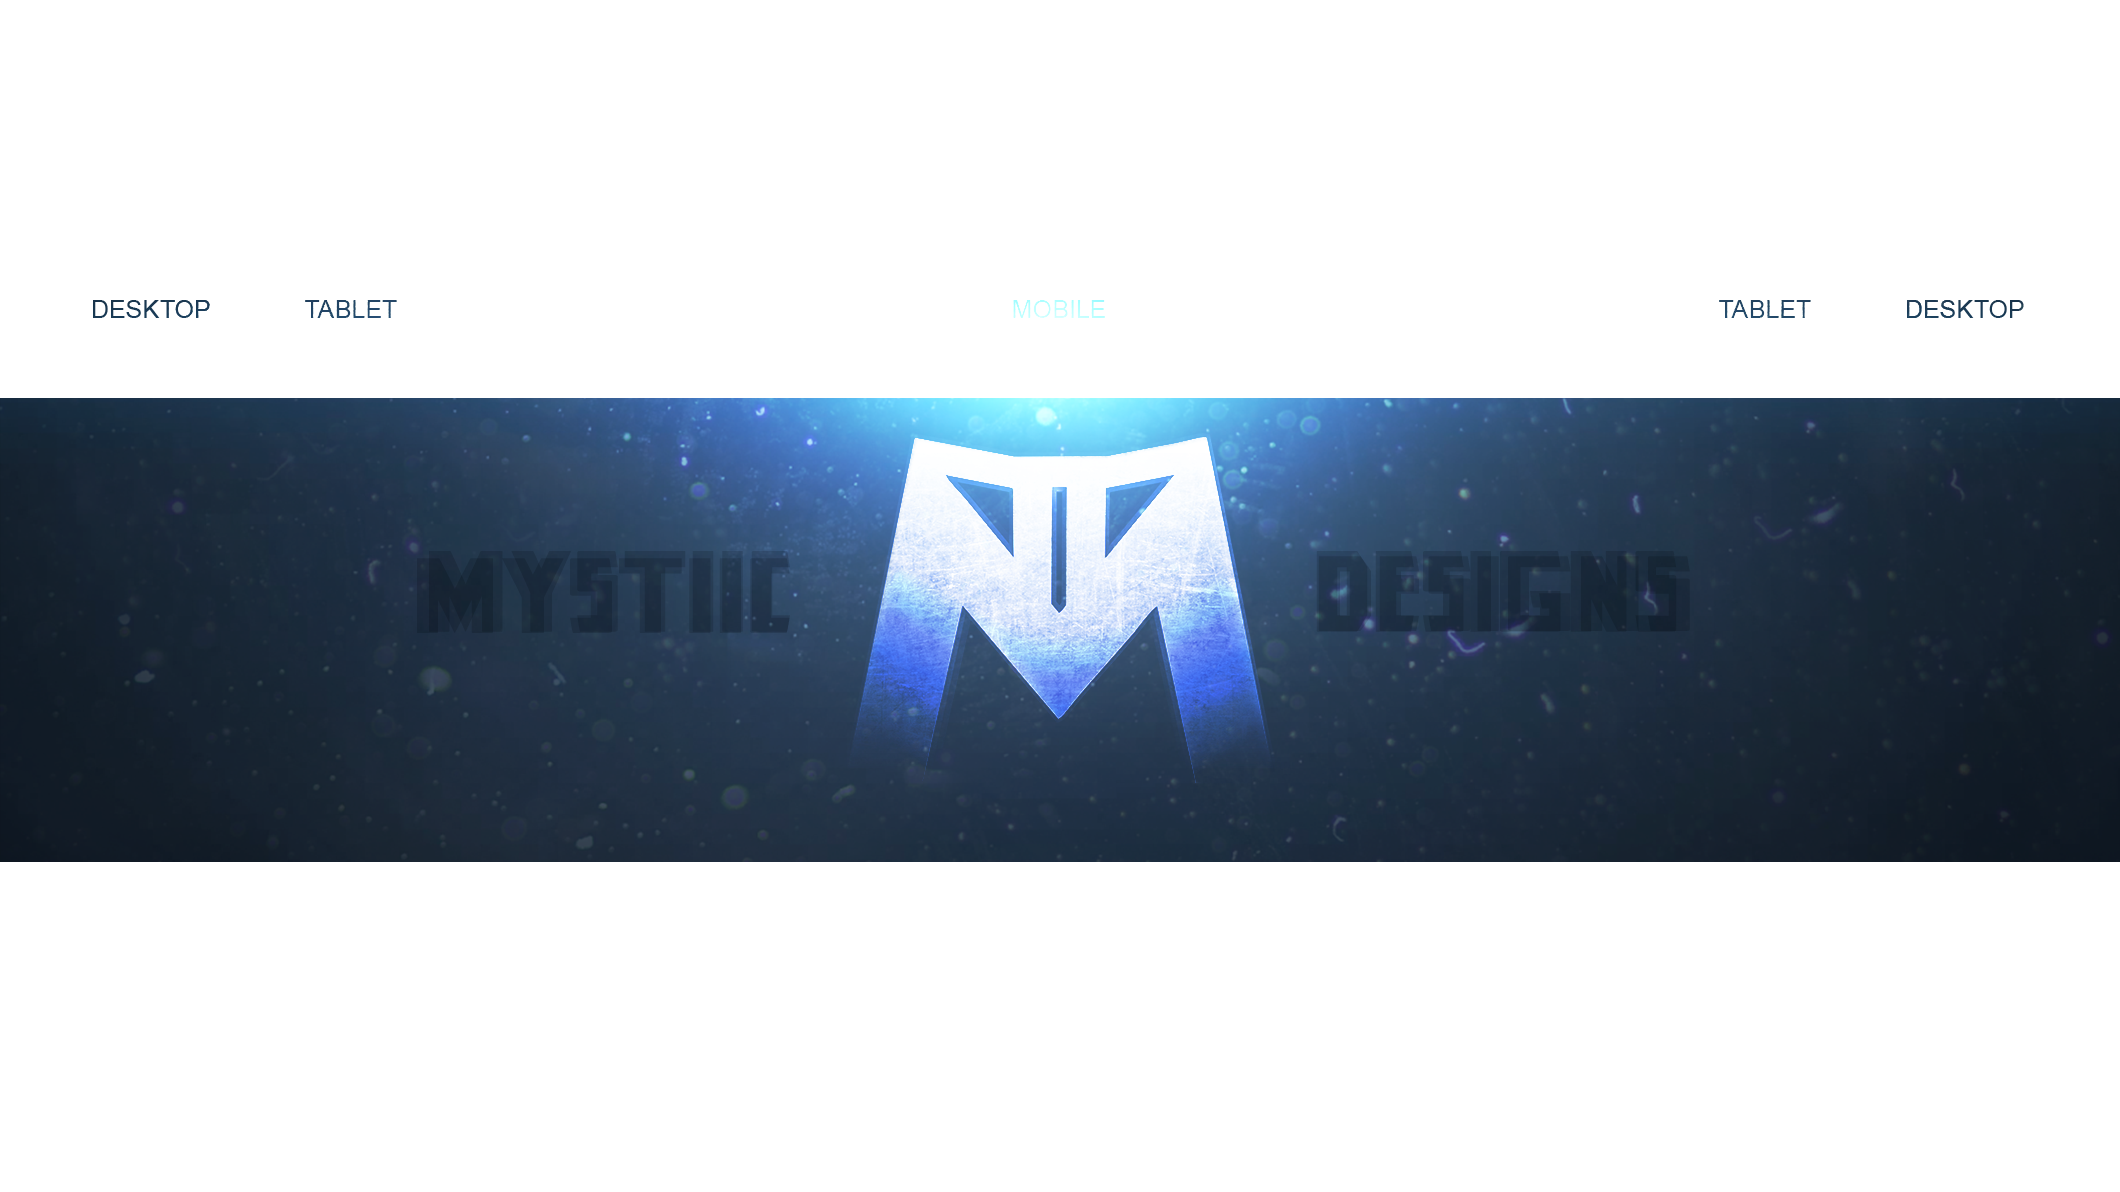 My First Personal YouTube BackgroundBanner by ByMystiic on 2120x1192